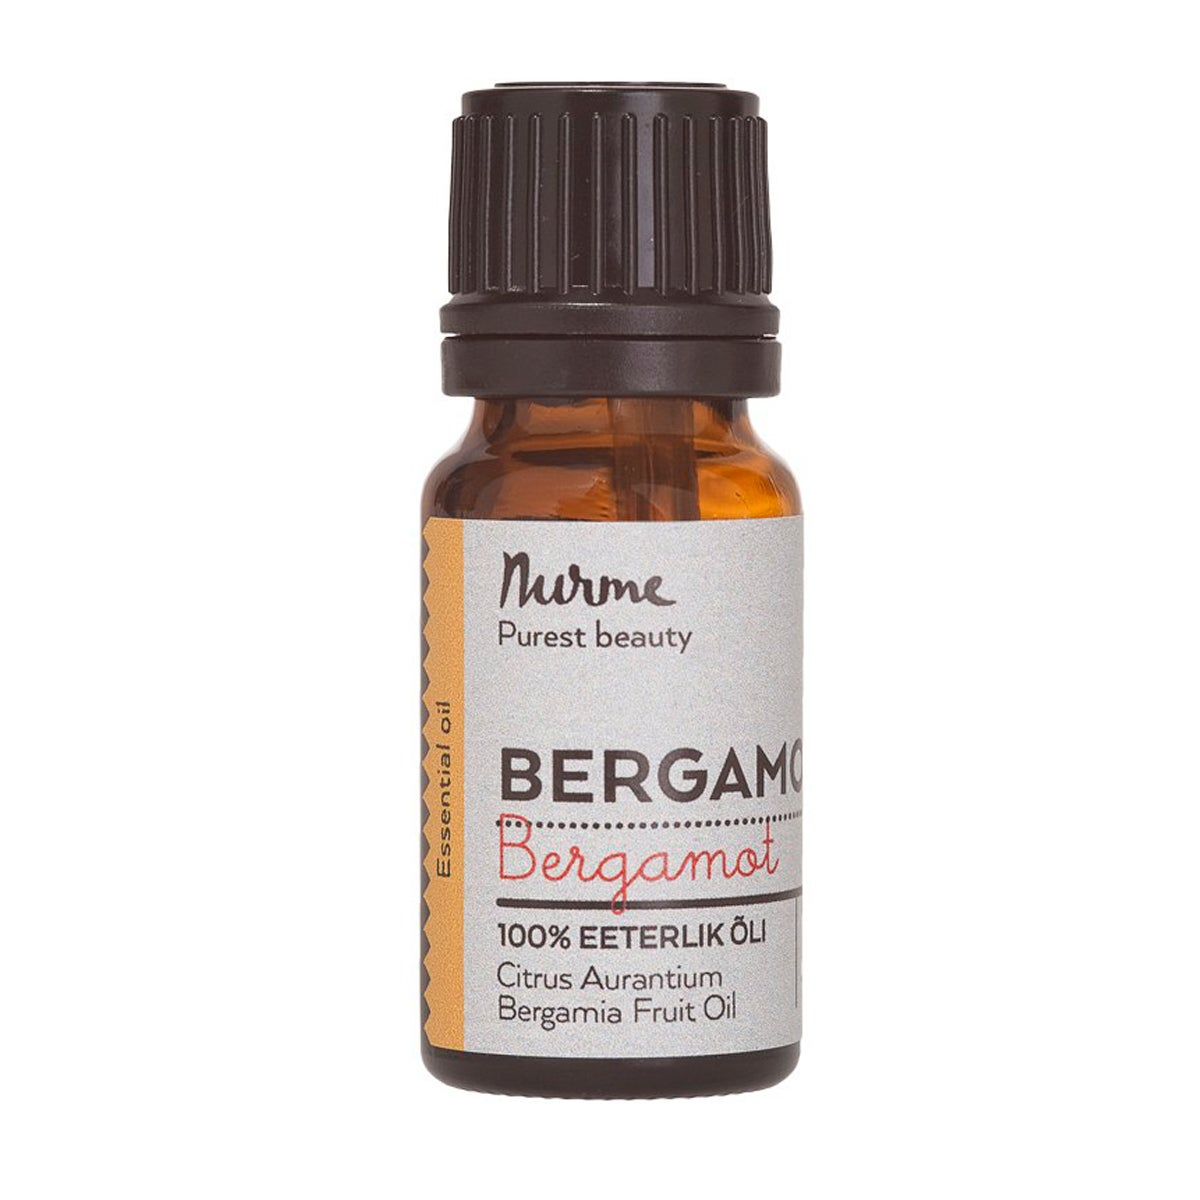 Nurme Bergamot Essential Oil